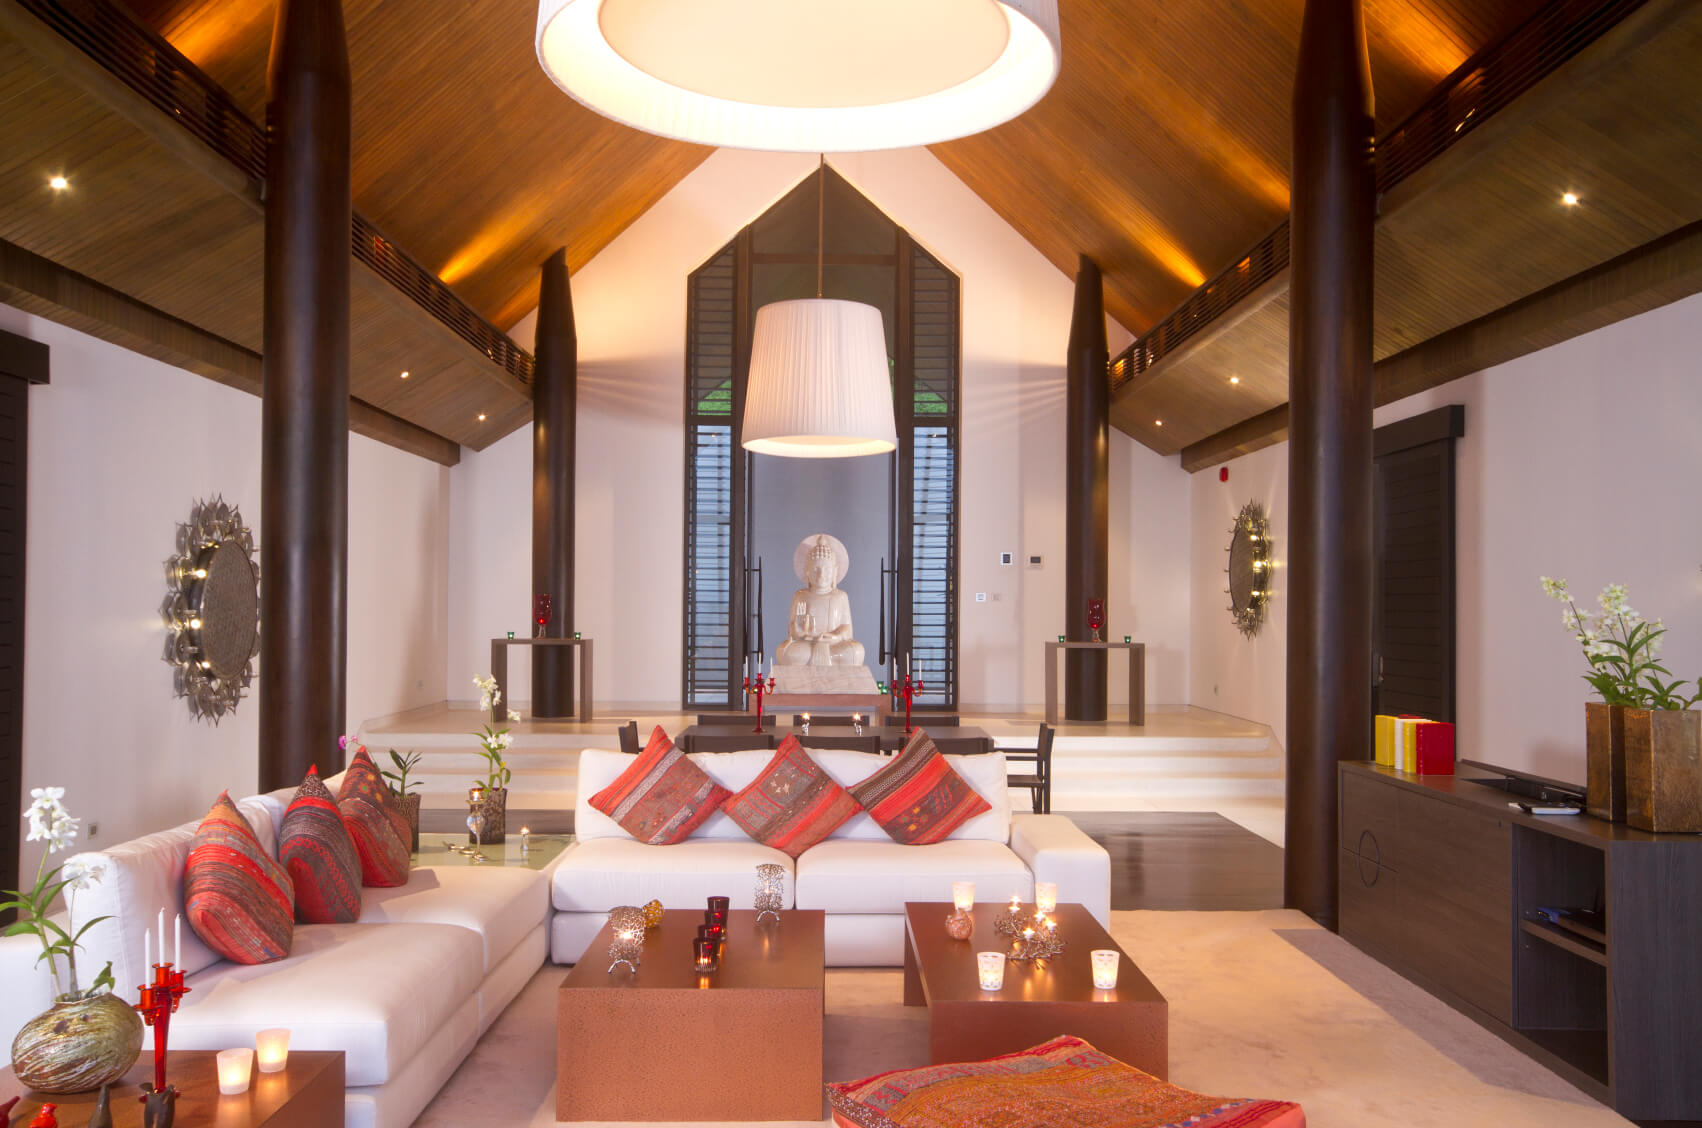 14 stunning asian living room ideas - Houzz wohnzimmer ...